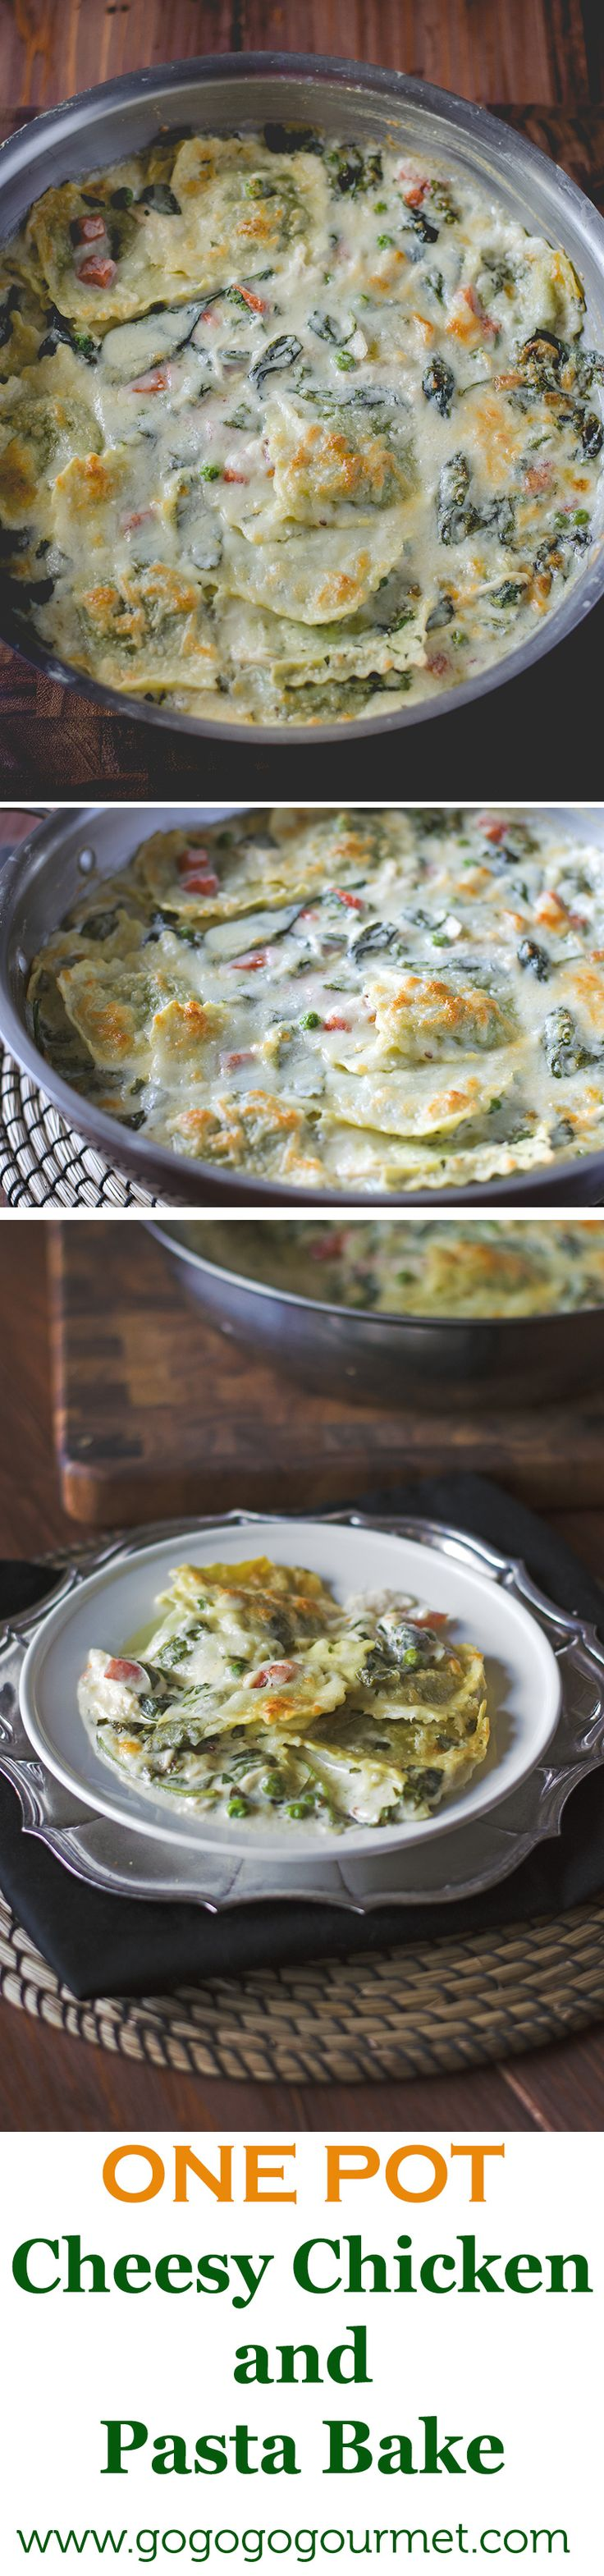 ... pasta almost cheeseless pasta casserole recipes dishmaps baked pasta